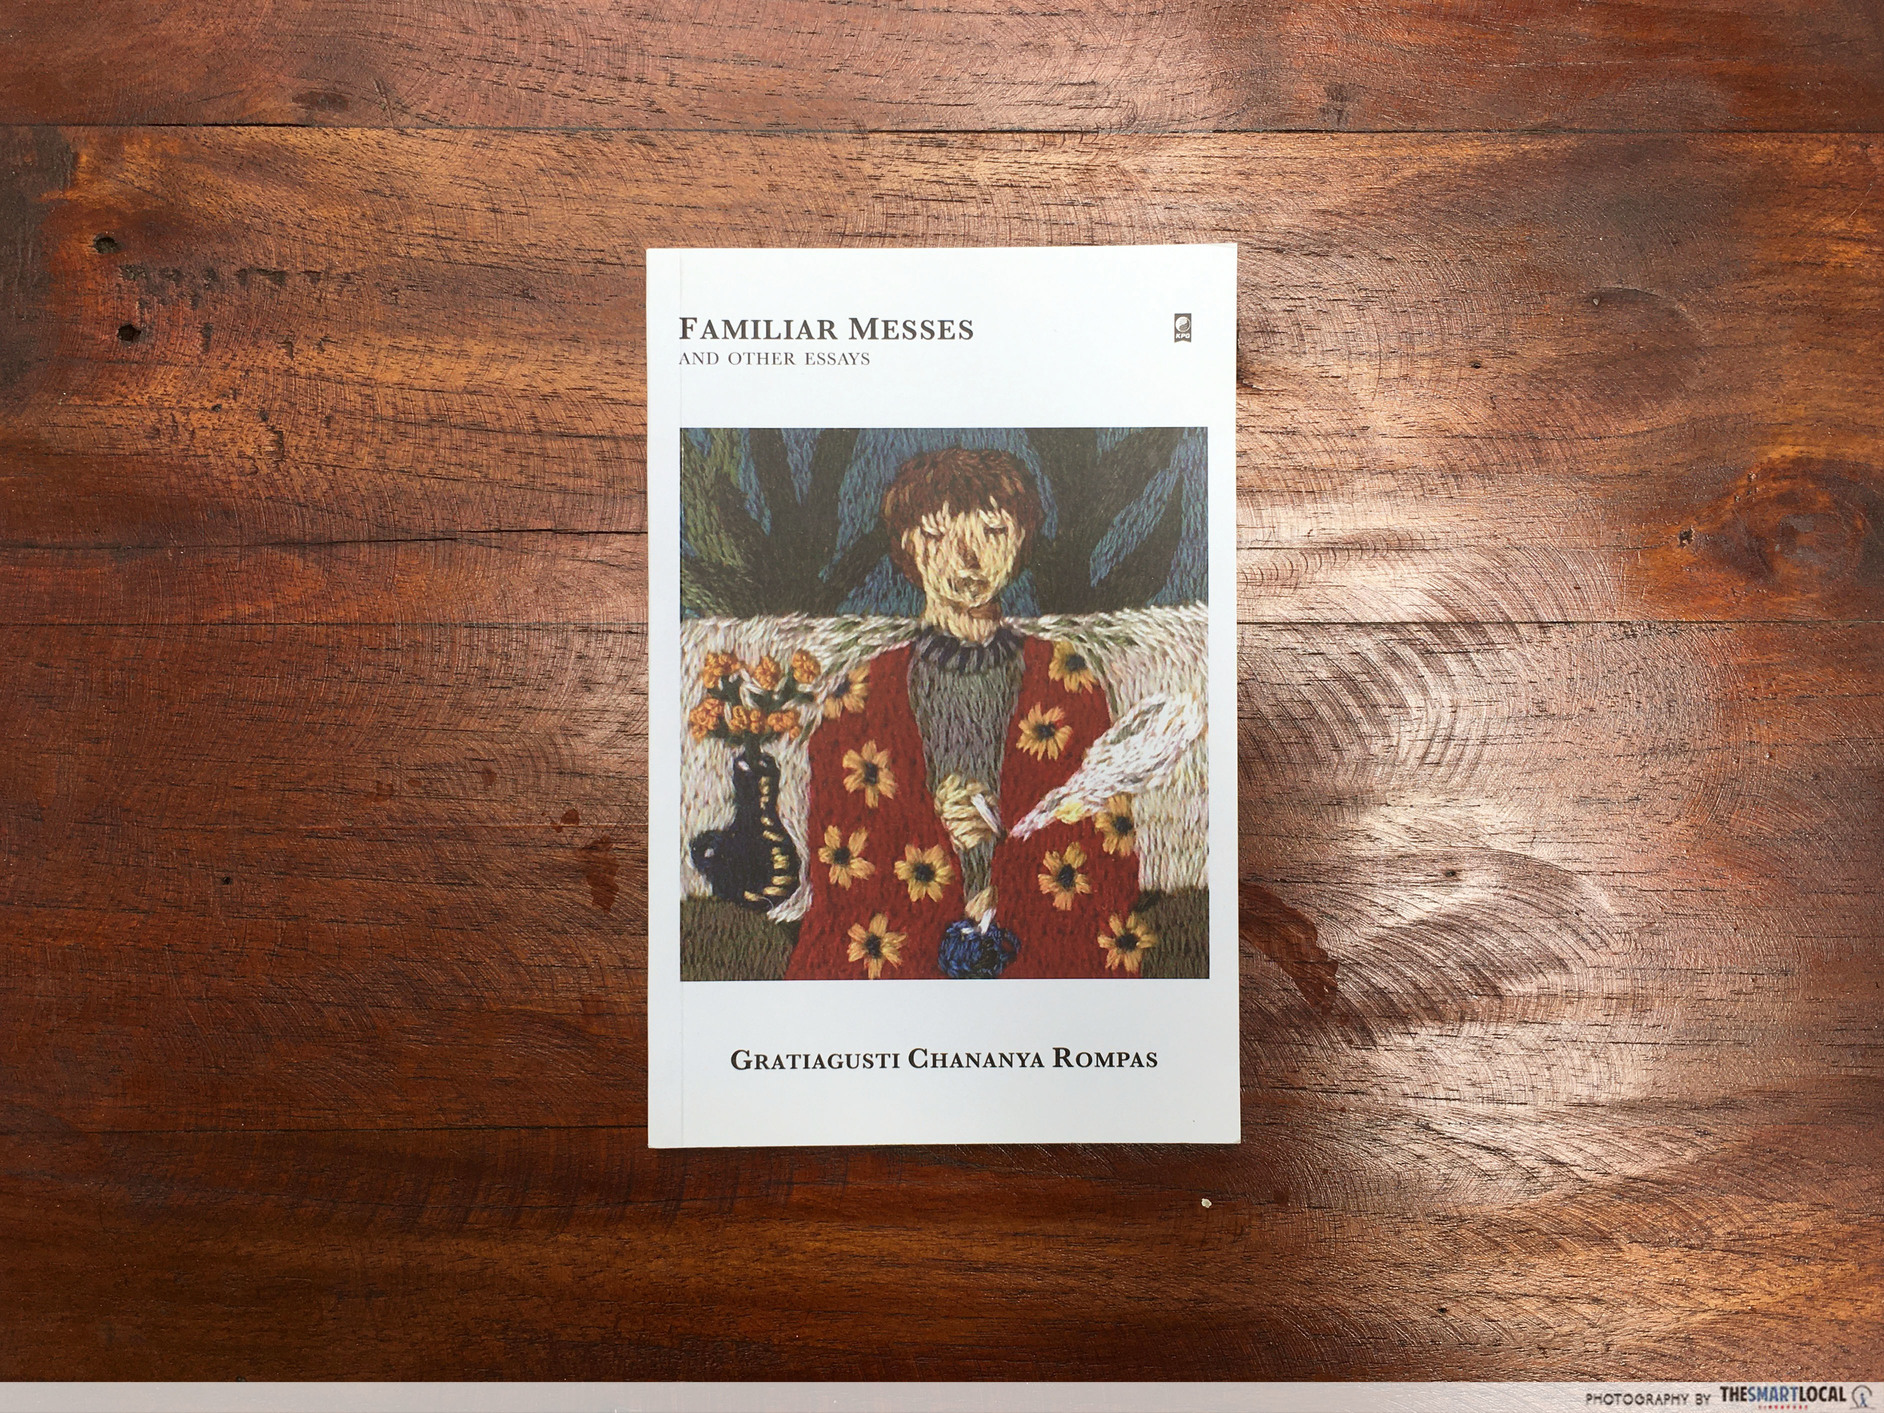 Familiar Messes and Other Essays by Gratiagusti Chananya Rompas